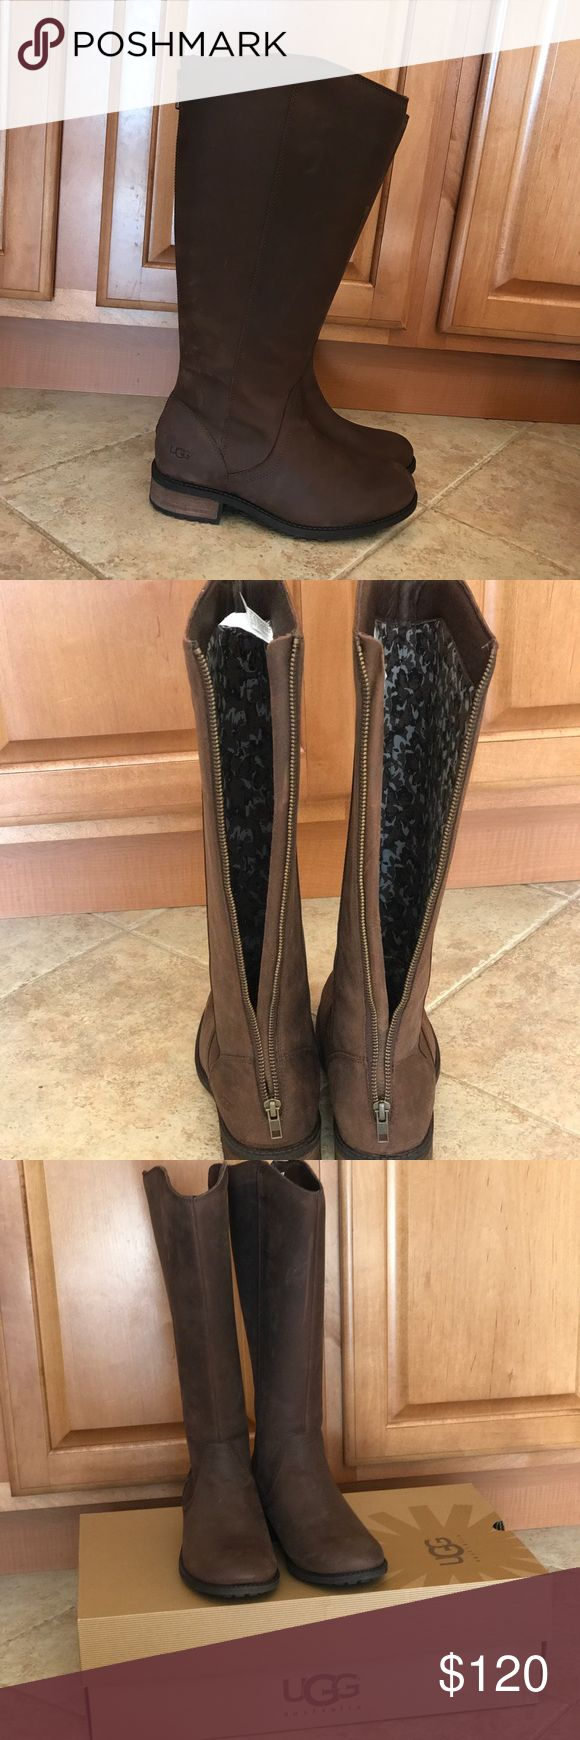 Ugg boots never been worn. Authentic with box. UGG Shoes Heeled Boots